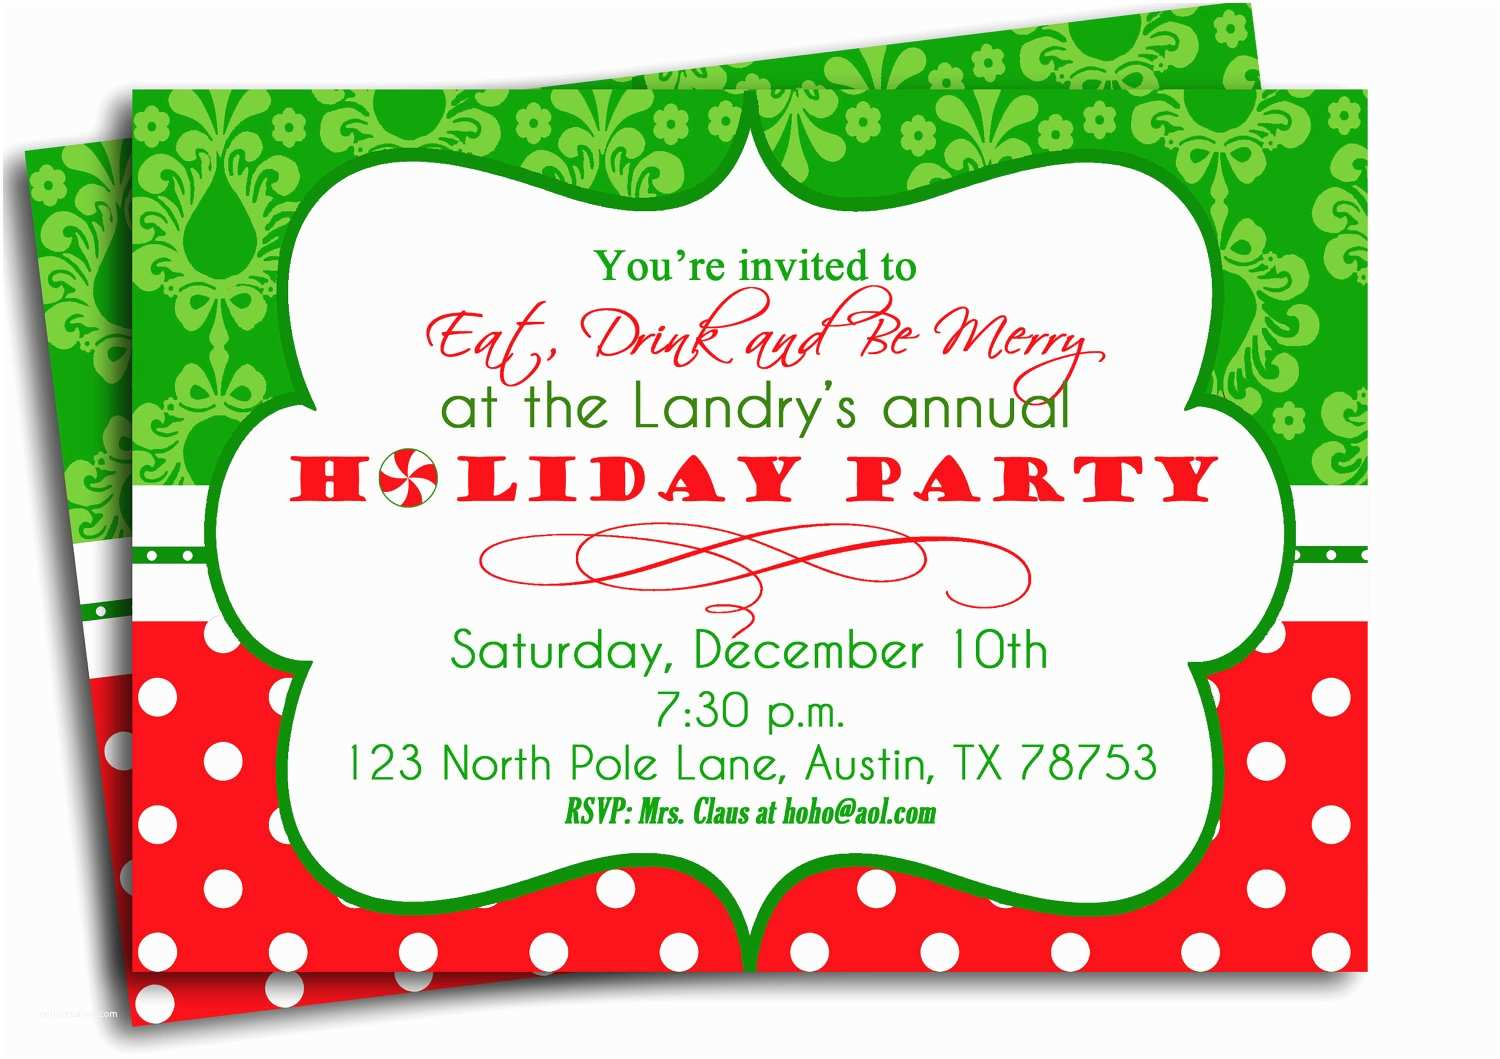 Christmas Party Invitations Christmas Party Invitation Printable Traditional Holiday